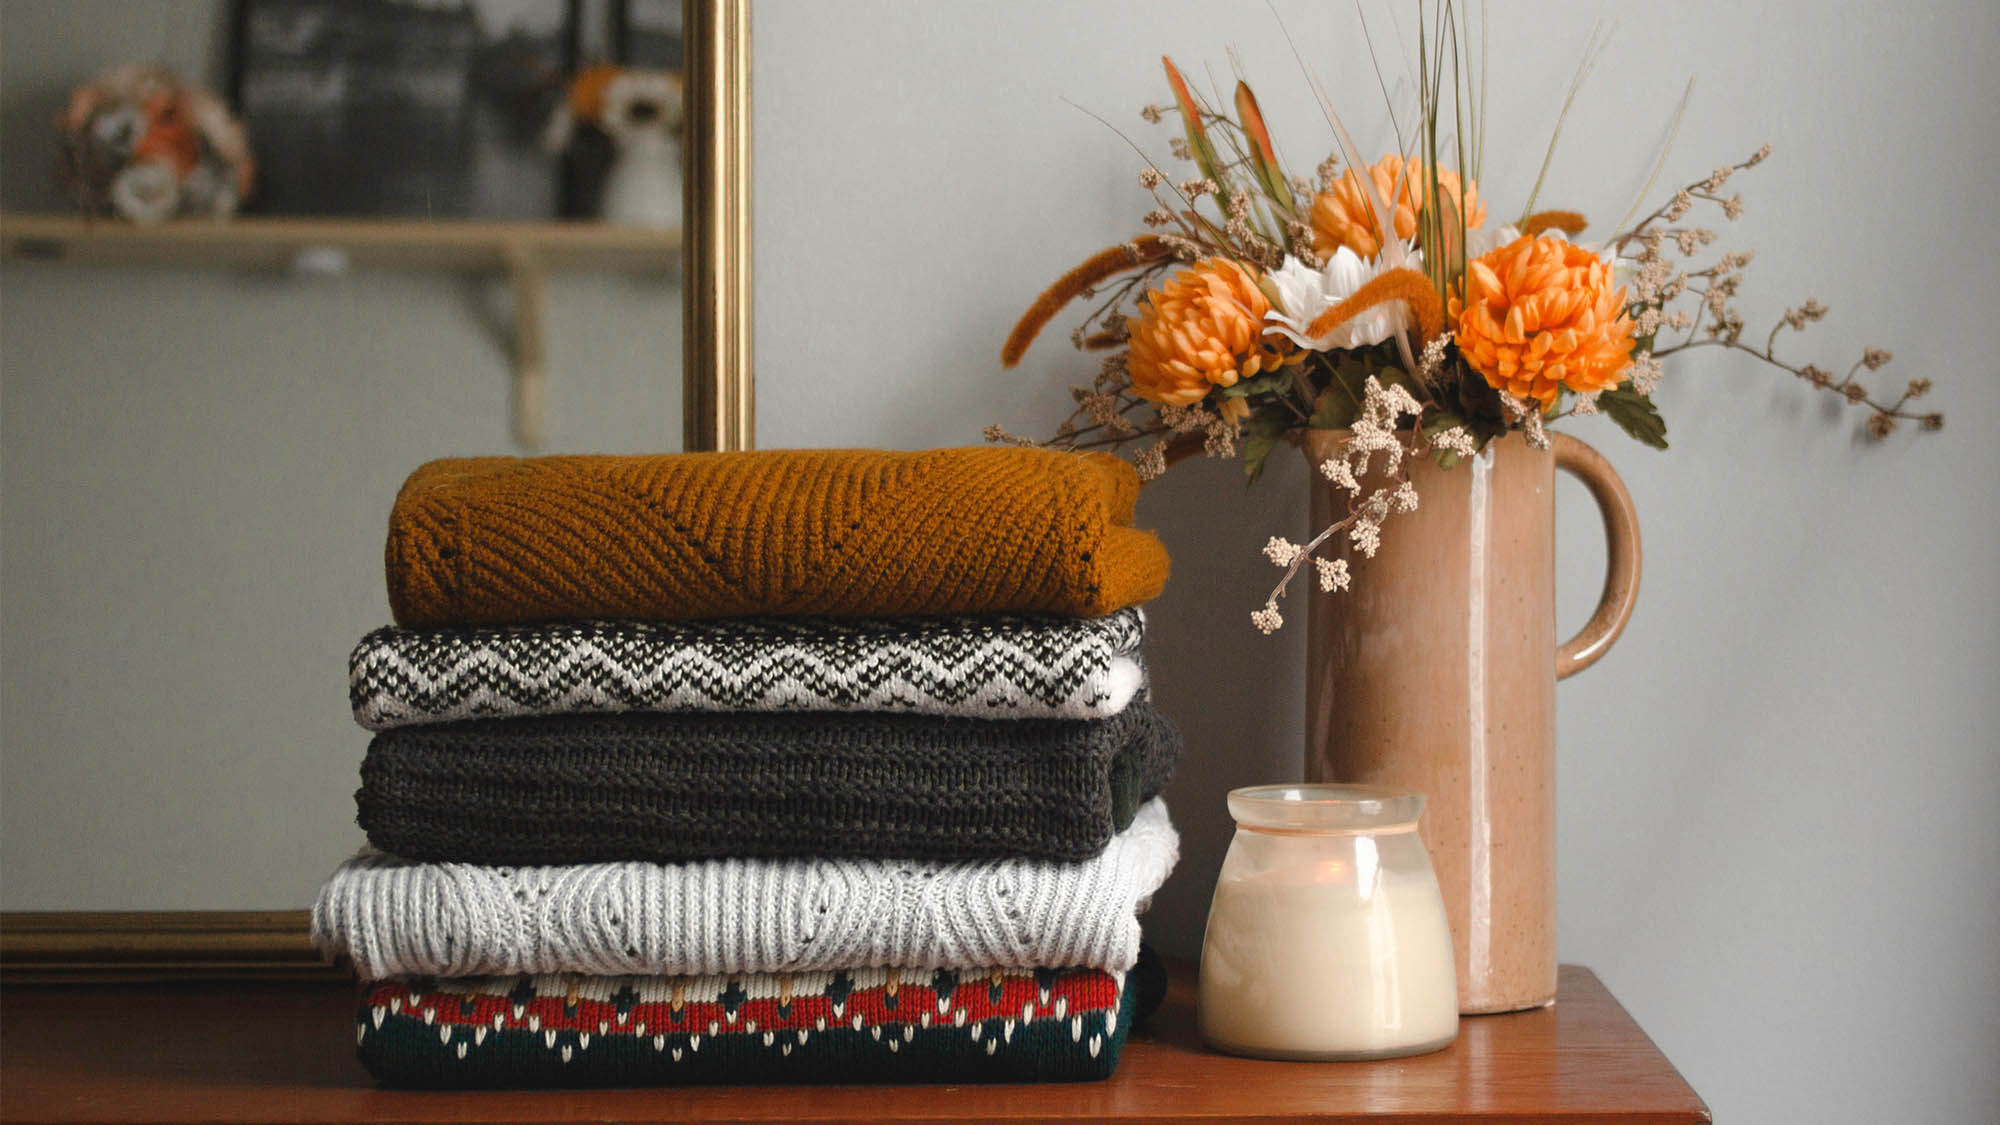 Five folded sweaters stacked on a dresser next to candle and vase with orange flowers